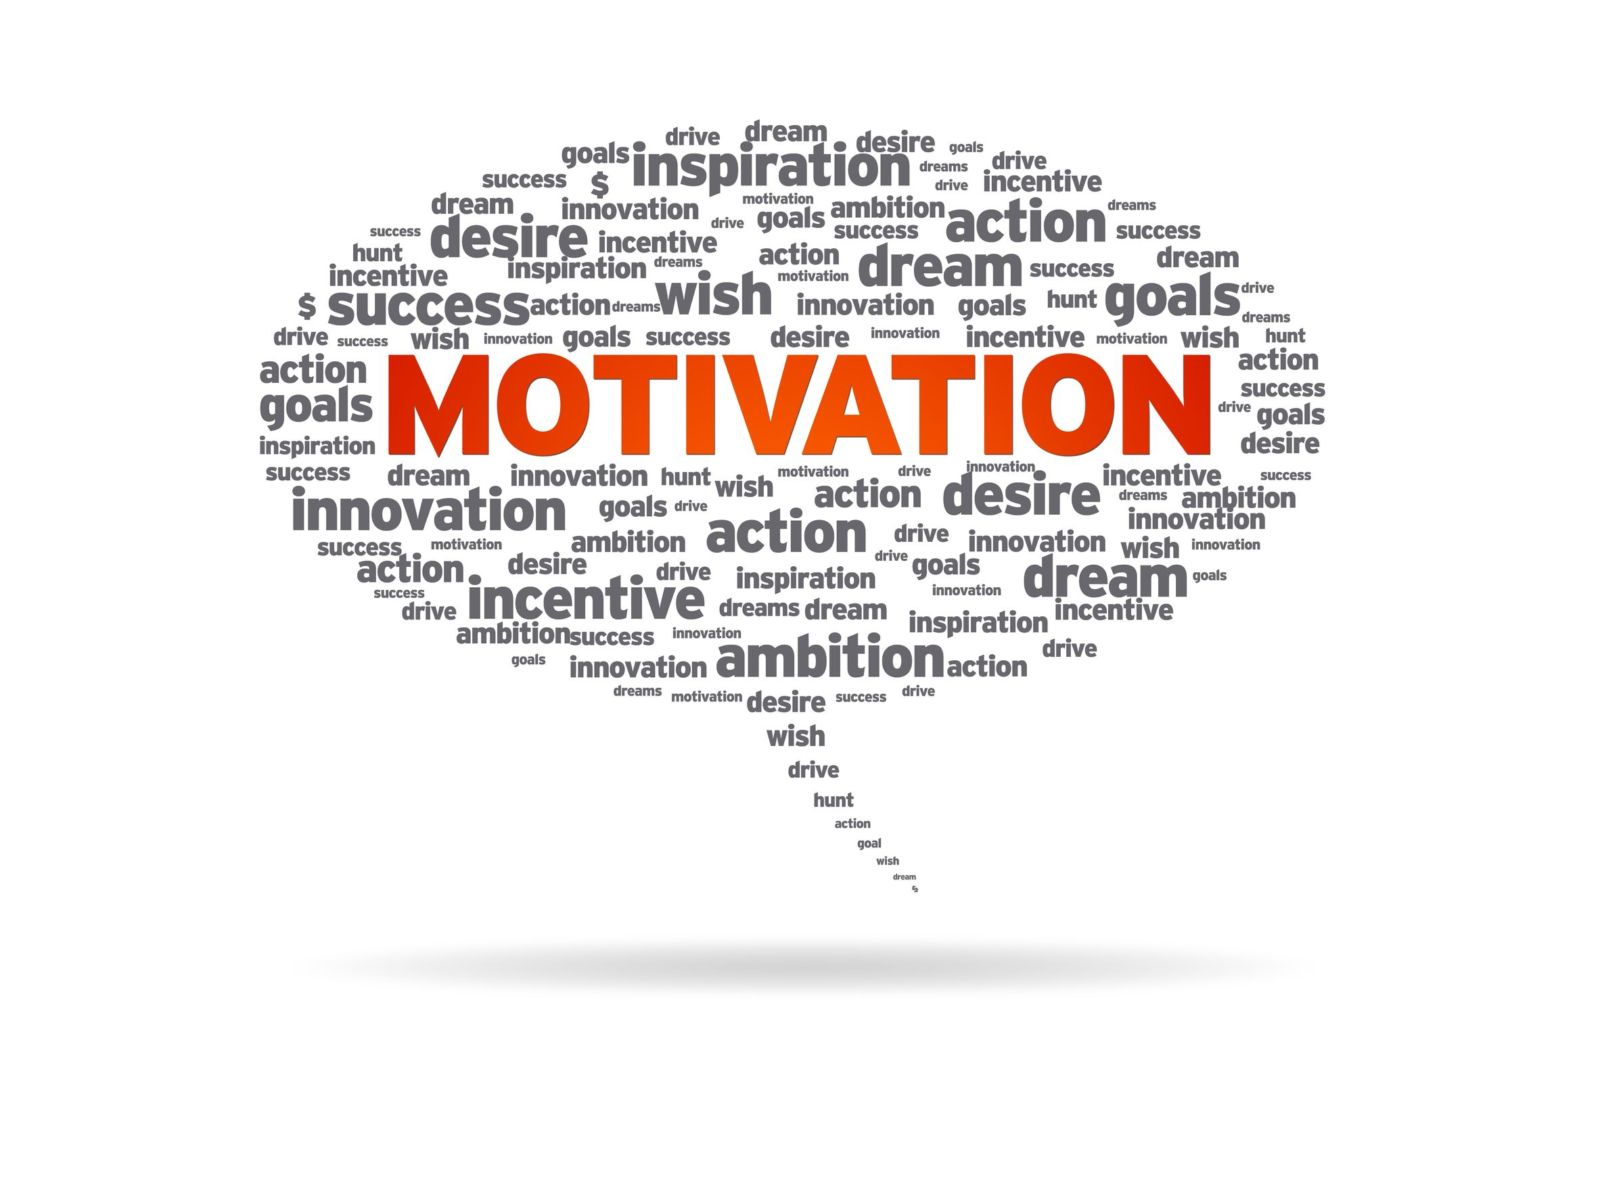 Motivational Speakers - Beliefs shape our actions.Thoughts are powerful things.How can we help?